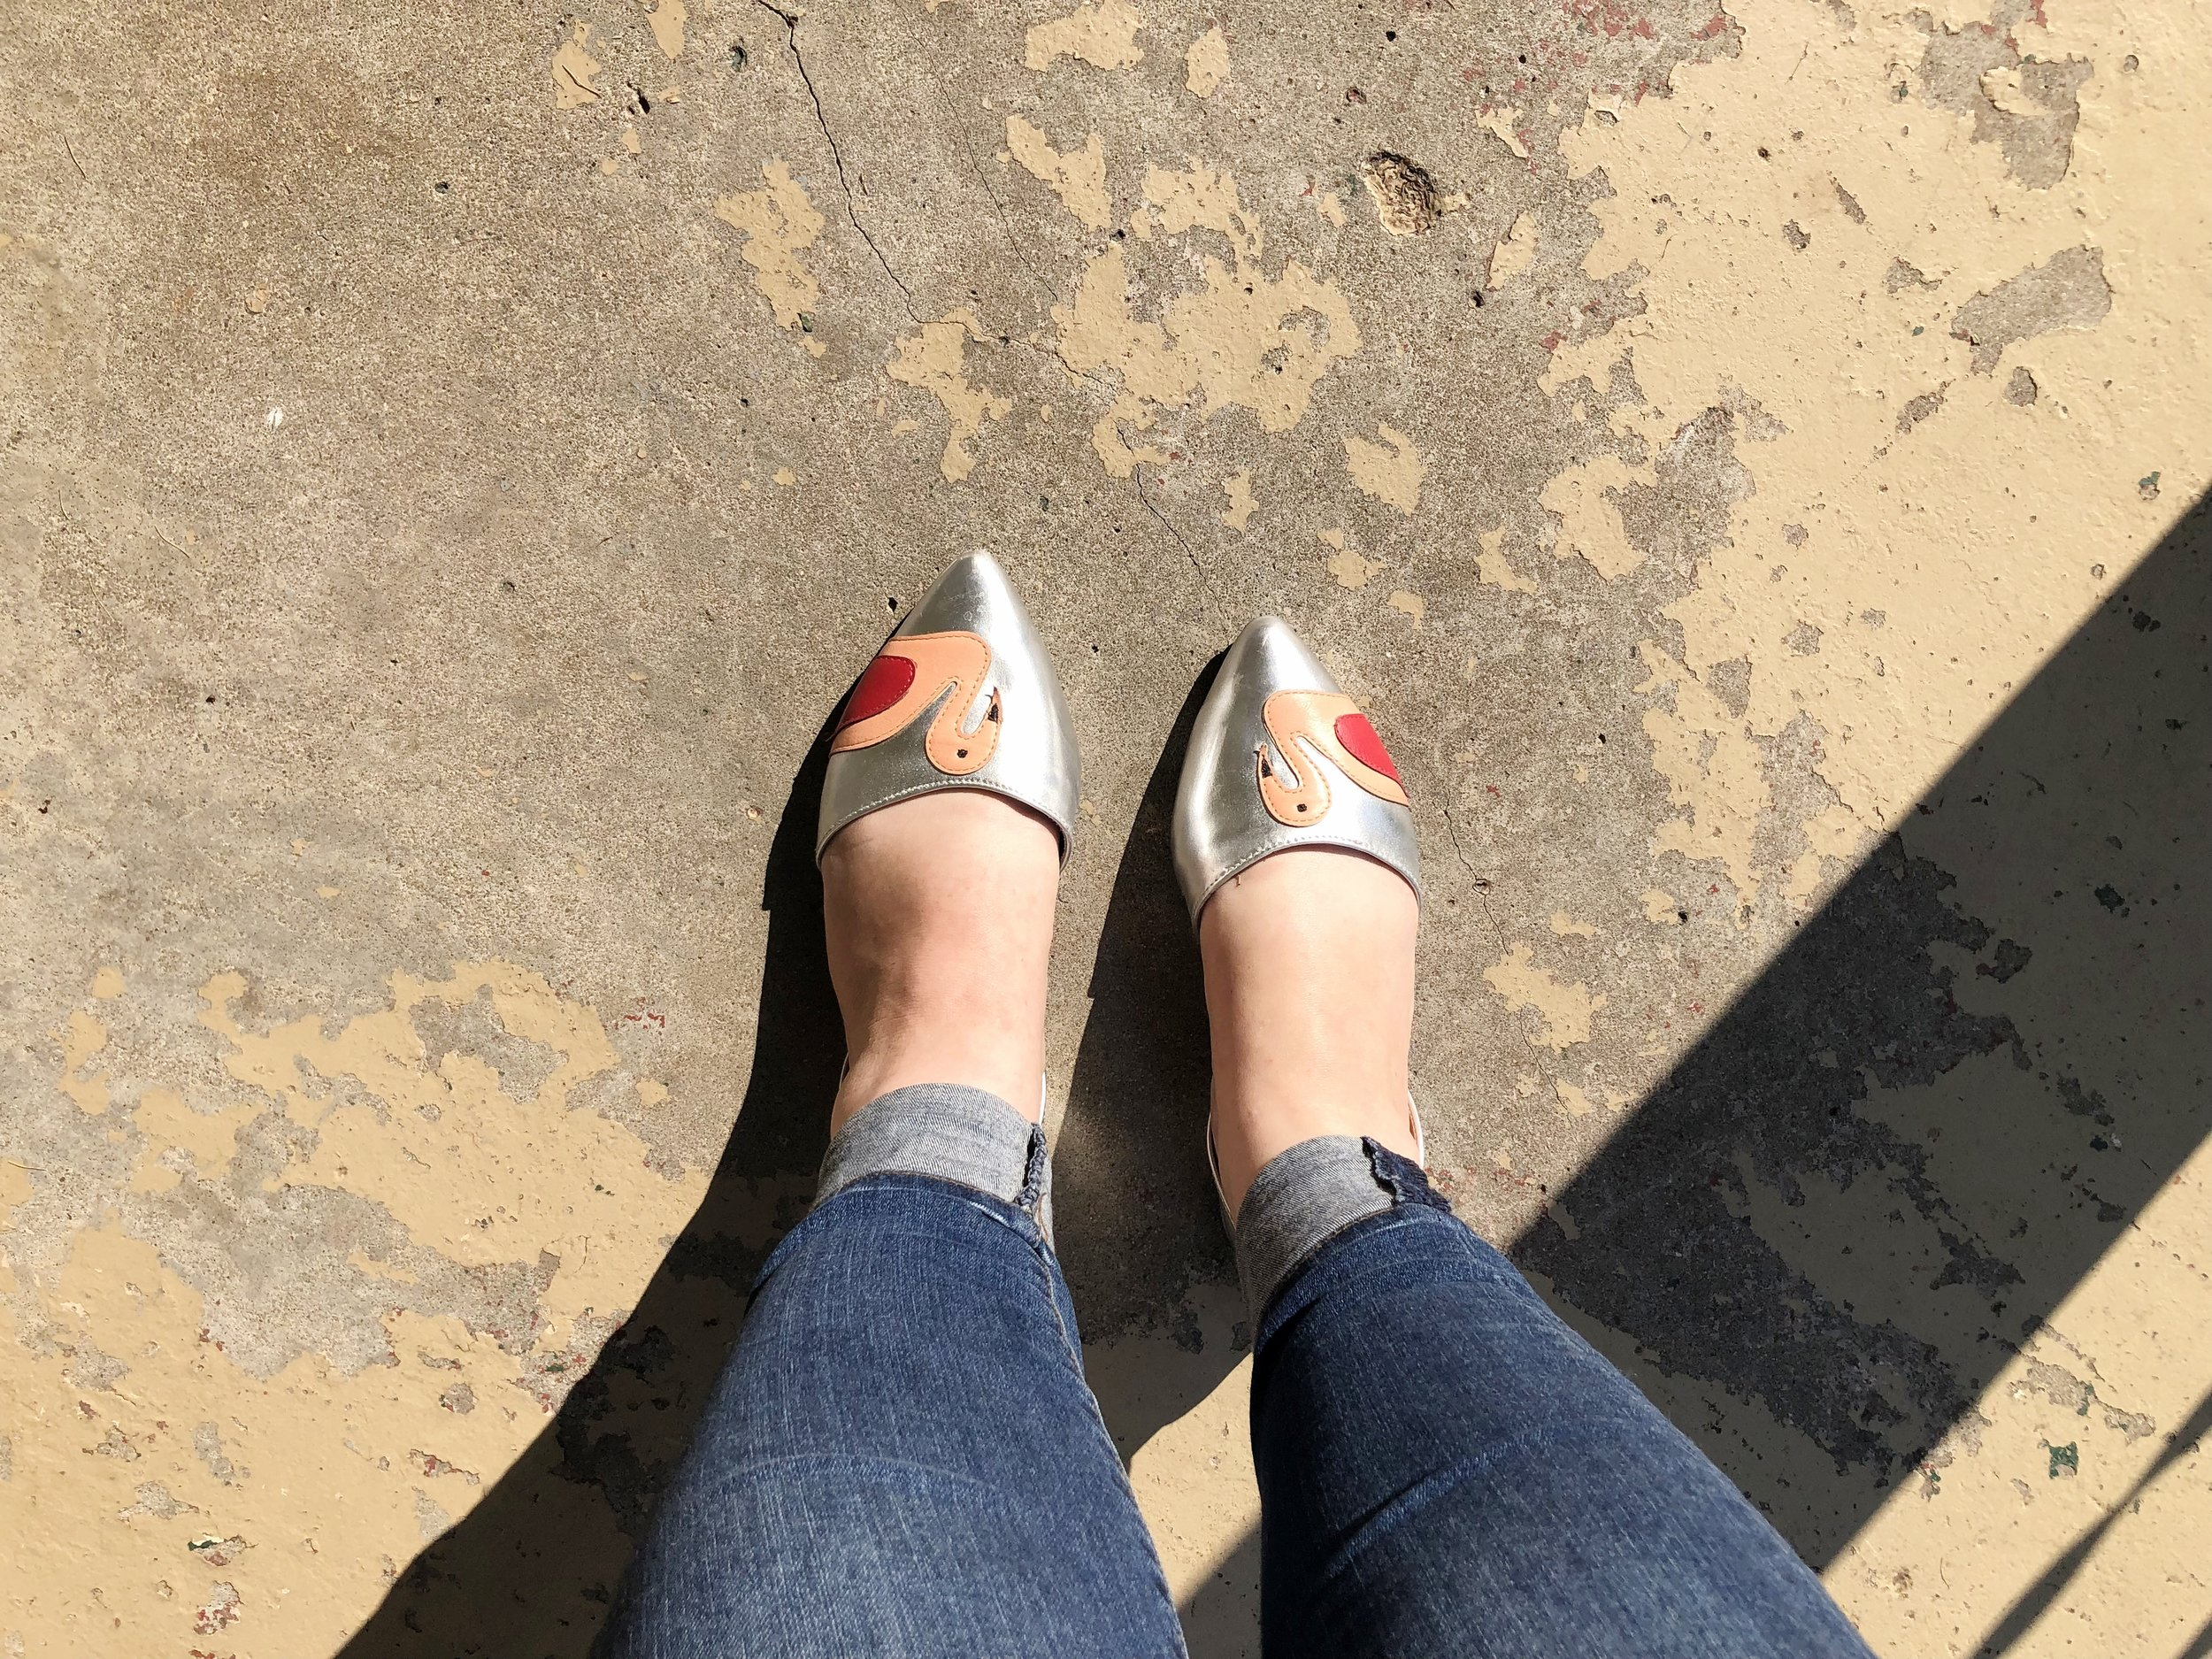 Flamingo Shoes jazz up my jeans and blouse combo!